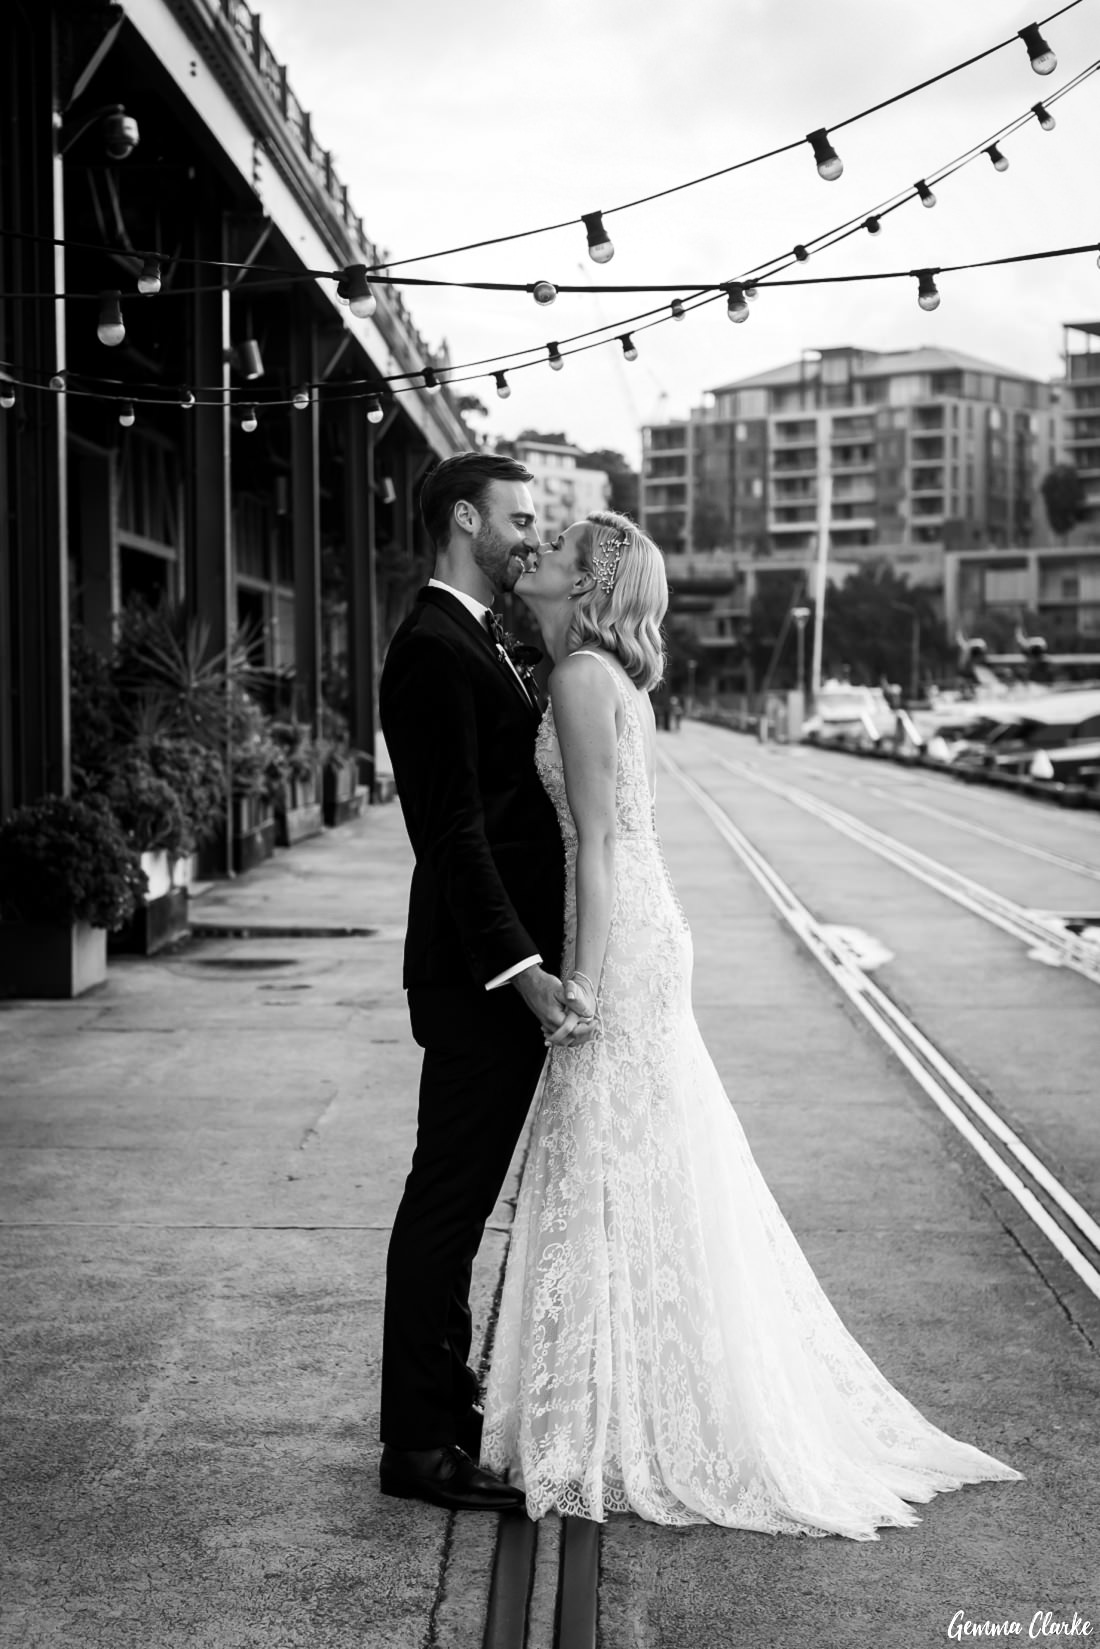 Kate and Matt decided to have some photos captured before the ceremony on the wharf at this Cafe Morso Wedding